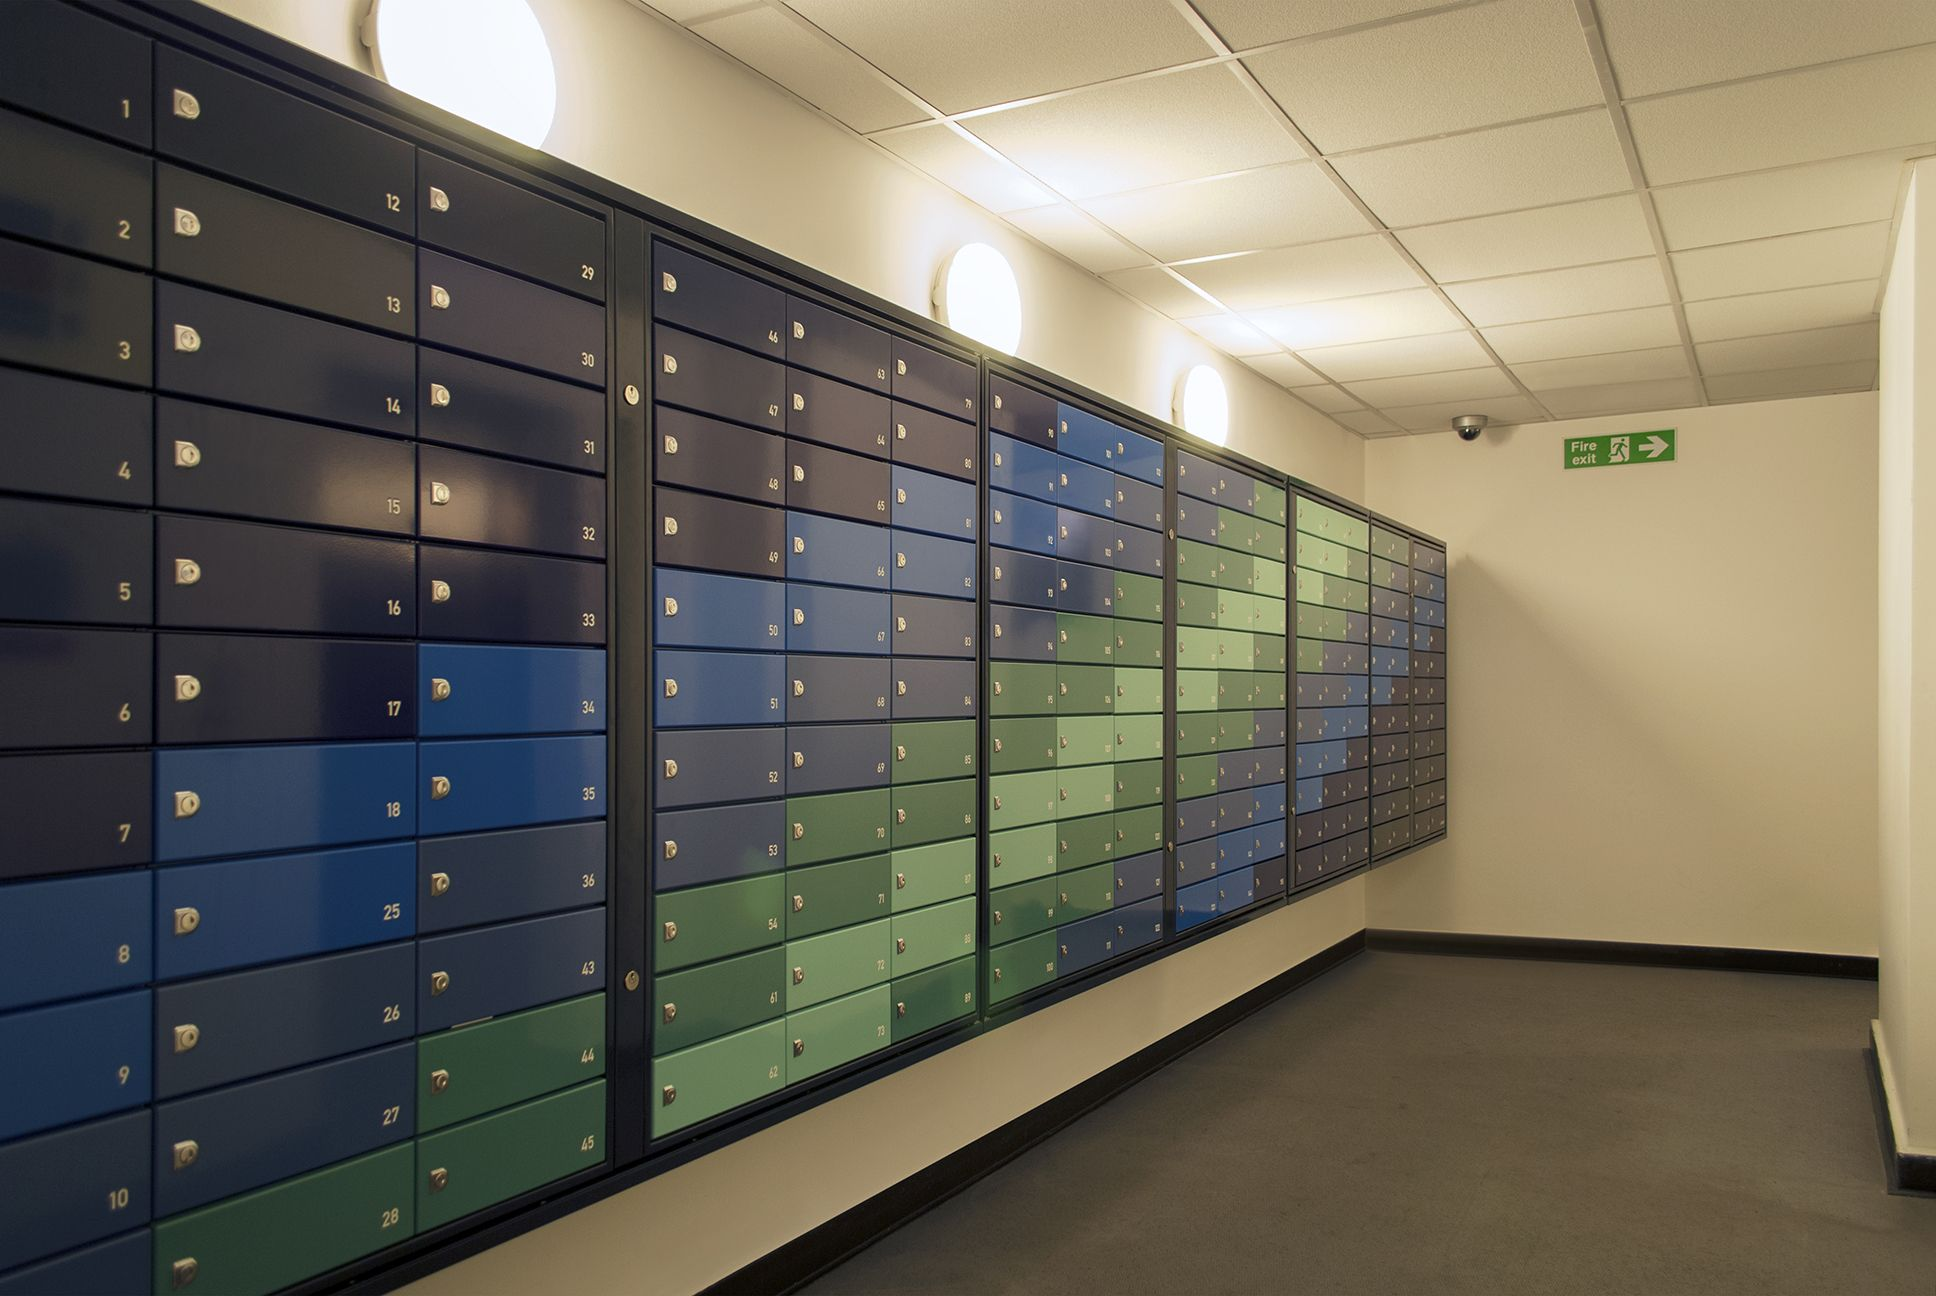 London Westgate Apartments Multiple Mailboxes Colourful Pigeon Holes Postboxes With Images Lobby Design Mailbox Design Residential Design